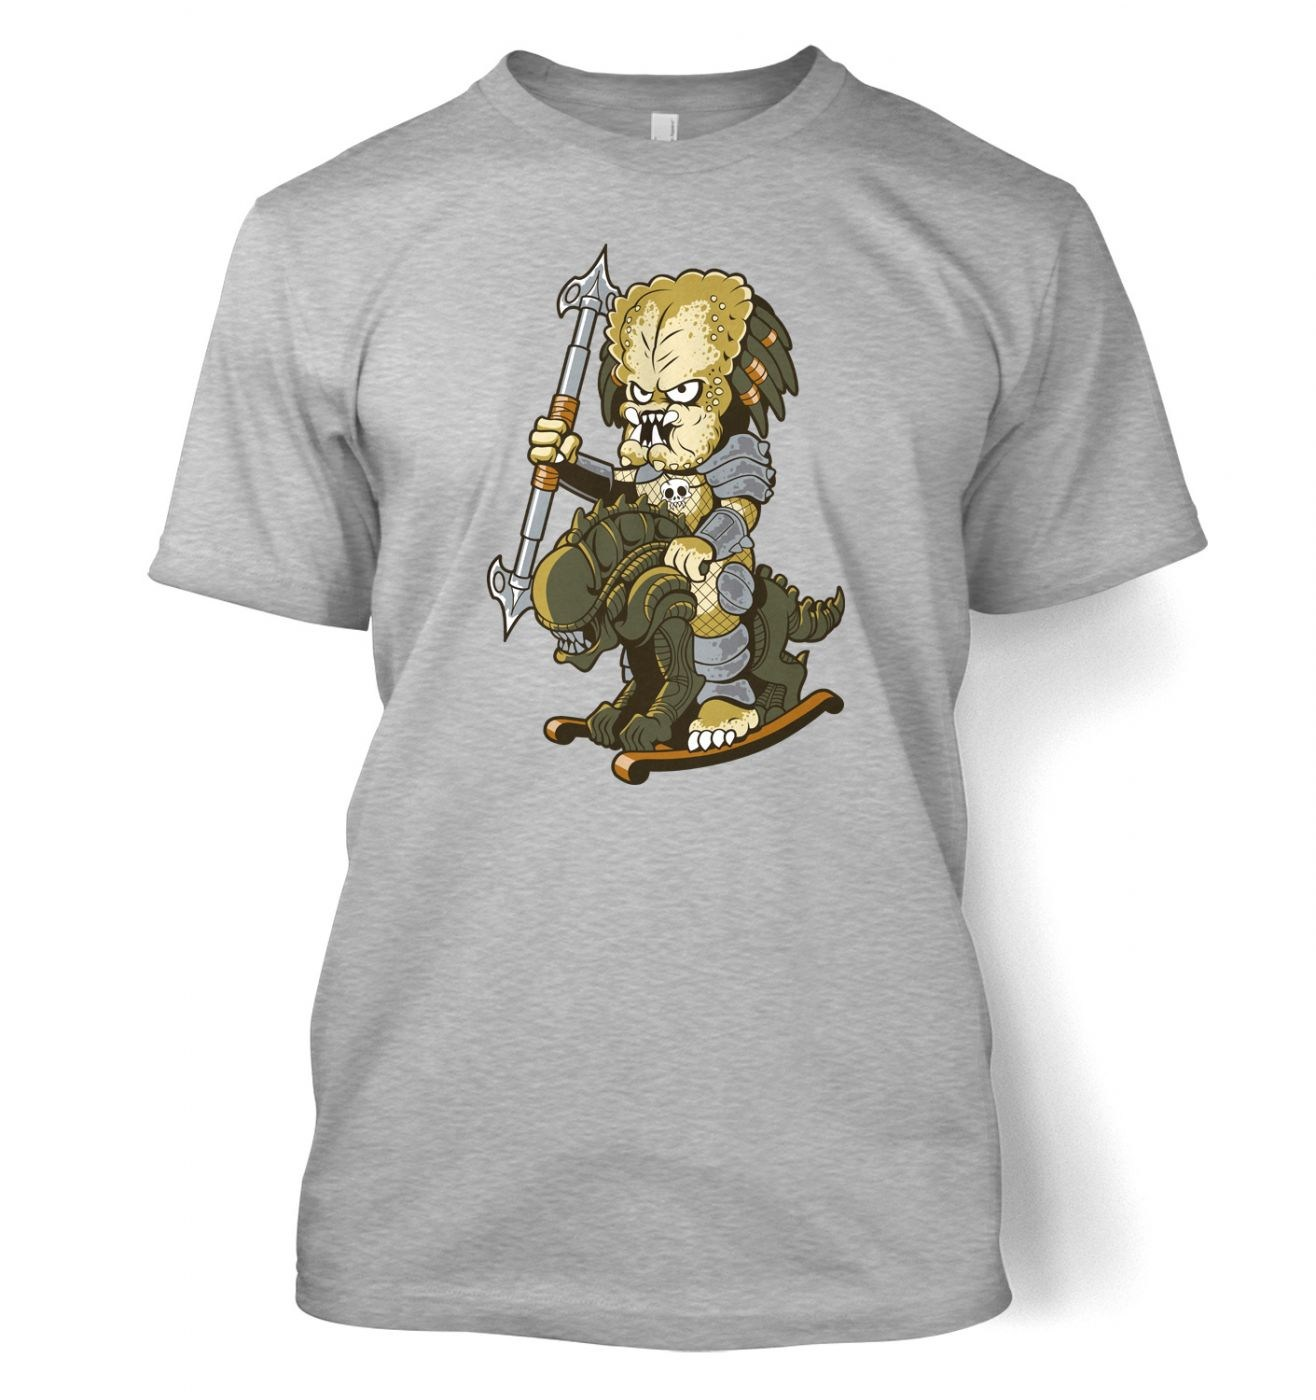 Get To The Rocka t-shirt